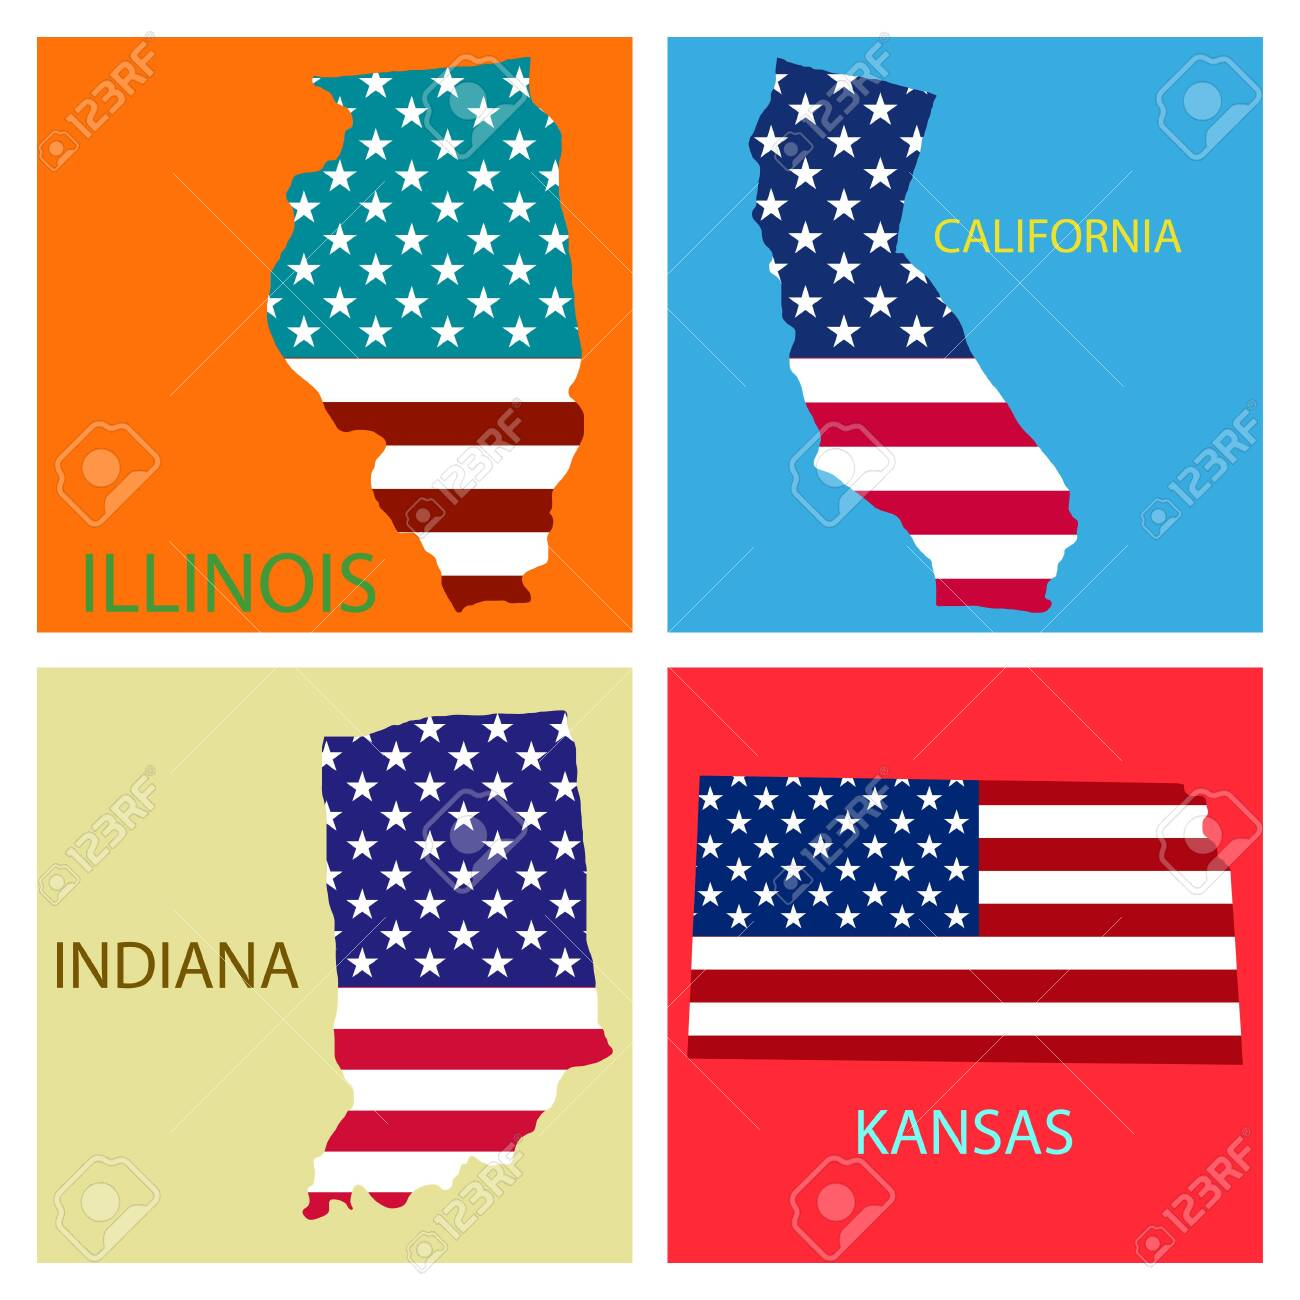 State Map Of United States Of America.Poster Map Of United States Of America With State Names Flag